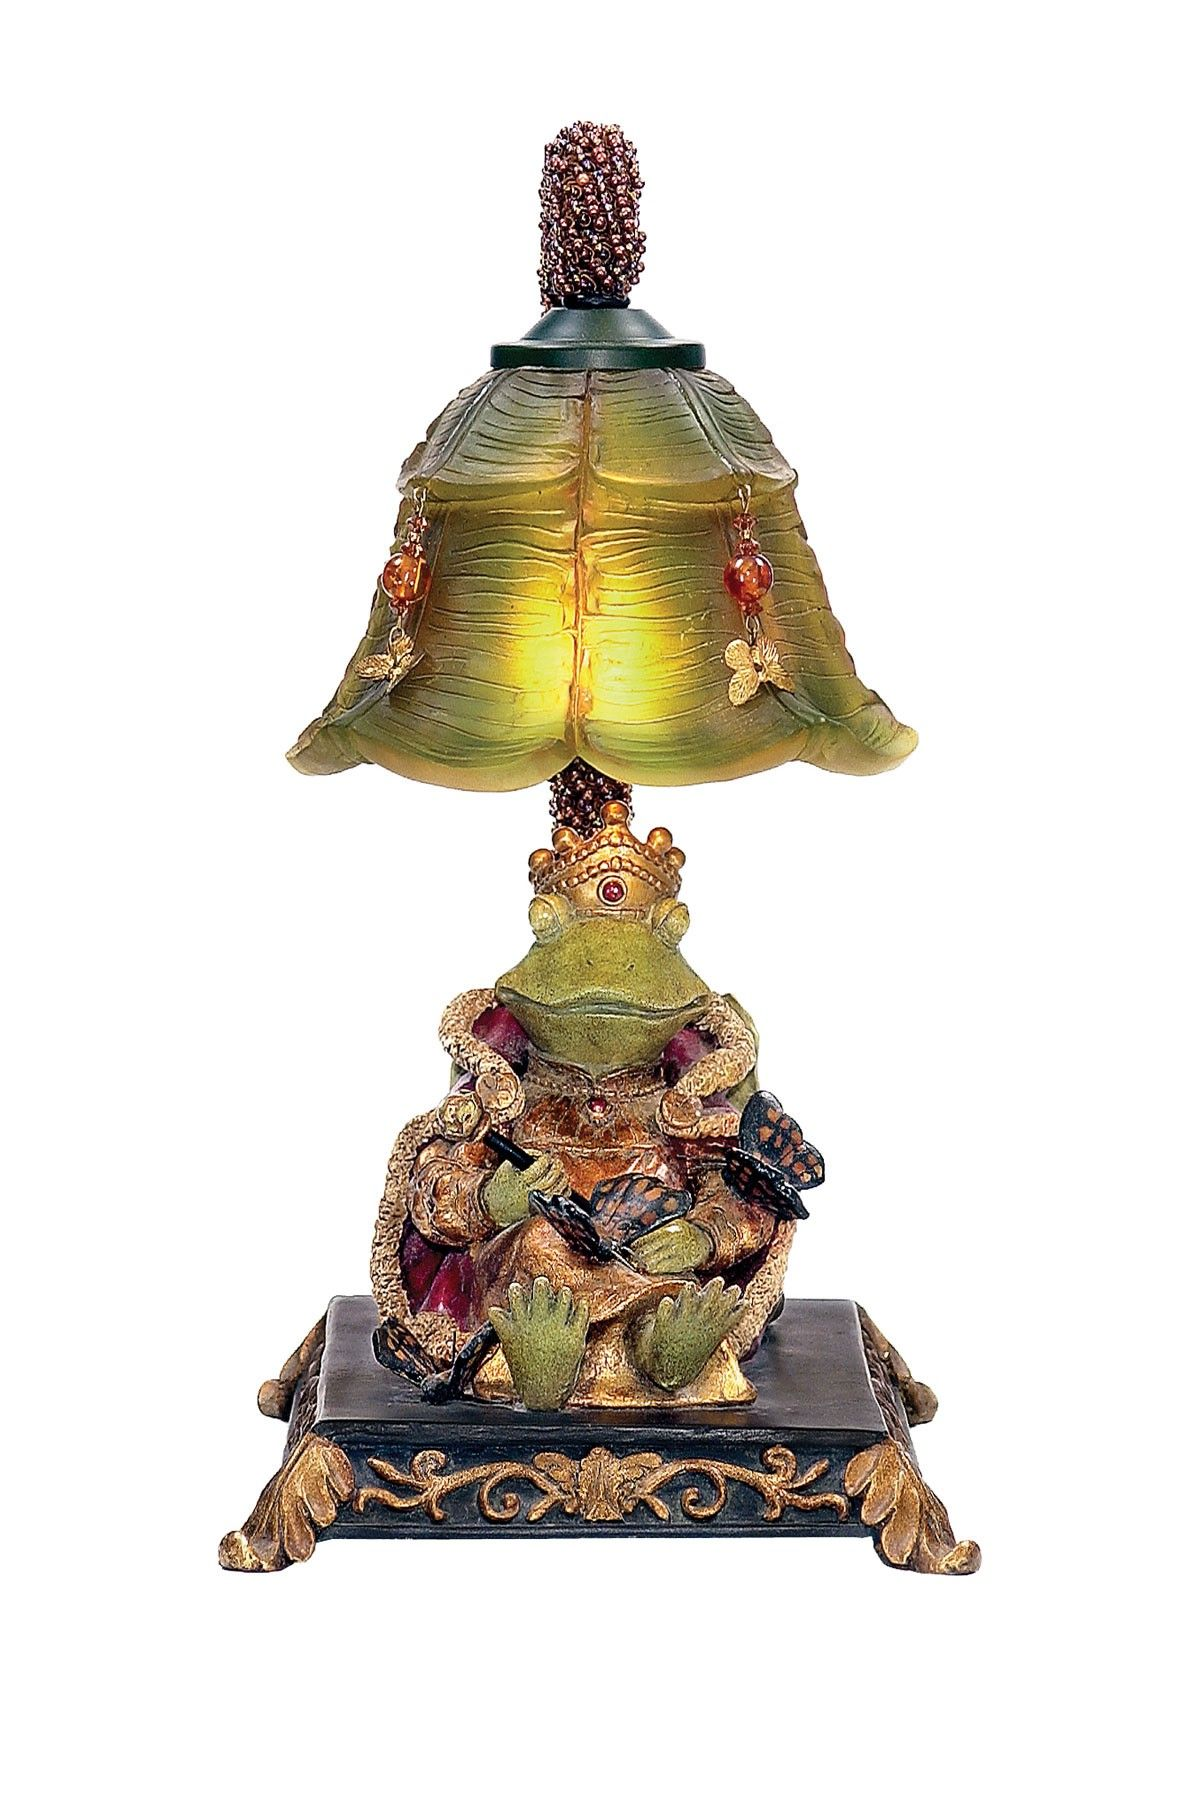 sterling resting queen frog mini accent table lamp hautelook lamps still heart love pottery barn wood desk leick mission furniture gold glass side wine cupboard foyer cabinet